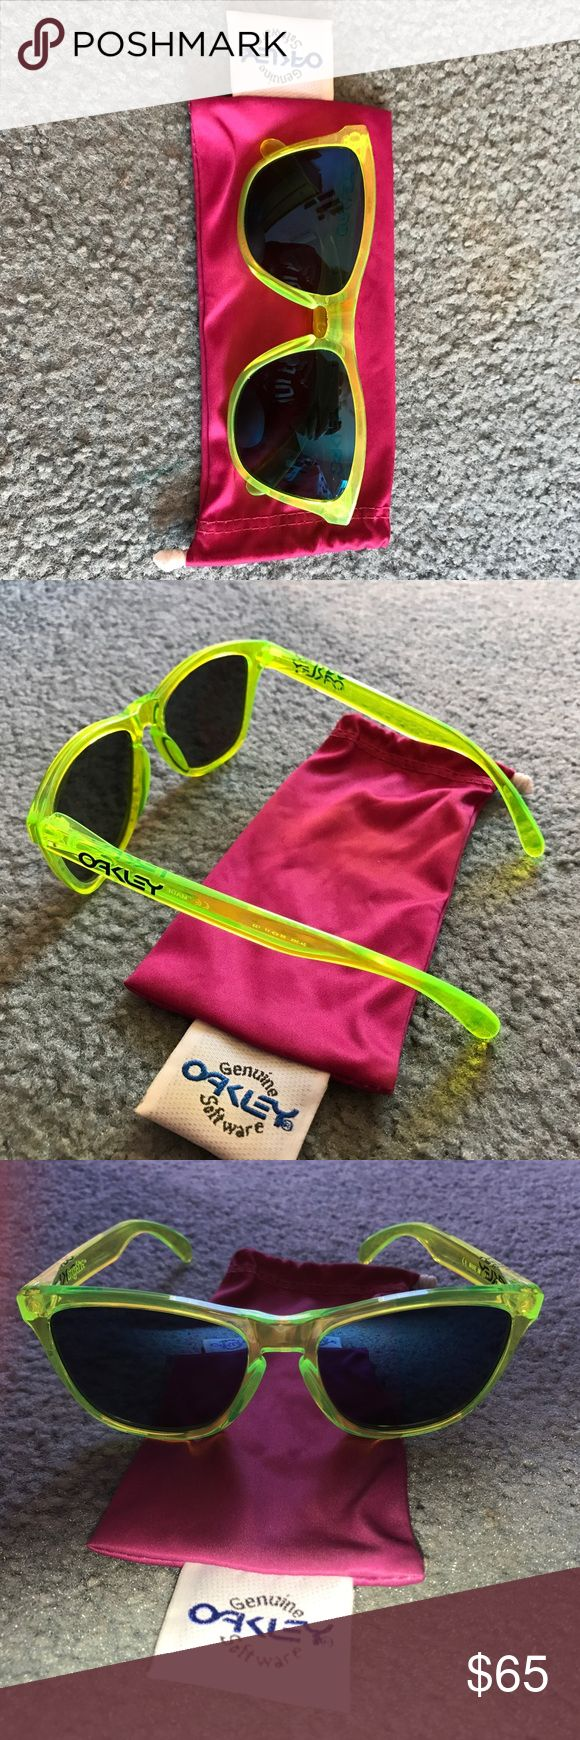 """Polarized Oakley Frogskins 100% authentic Oakley Frogskins with Polarized lenses. Soft case included. Gently used and lenses are scratch free! The frame is """"acid"""" yellow and the lenses have a faint blue mirror. Unisex Oakley Accessories Sunglasses"""